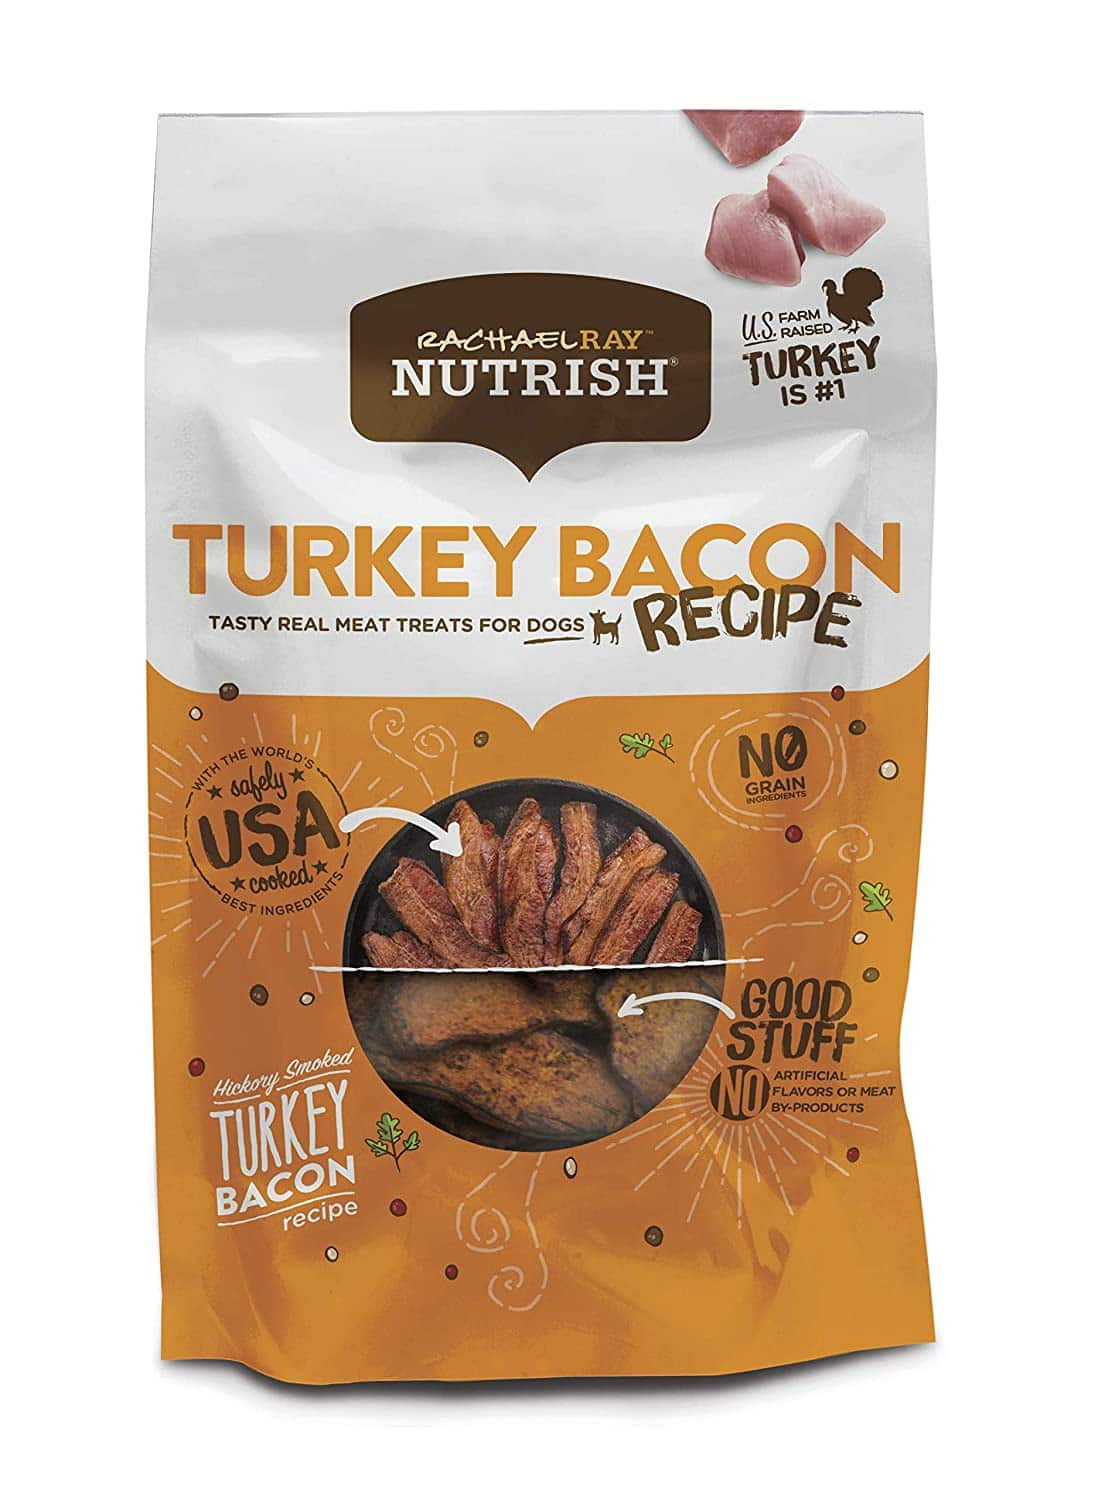 12-Oz Rachael Ray Nutrish Real Meat Dog Treats (Turkey Bacon Recipe) $3.75 w/ S&S + Free Shipping w/ Amazon Prime or Orders $25+